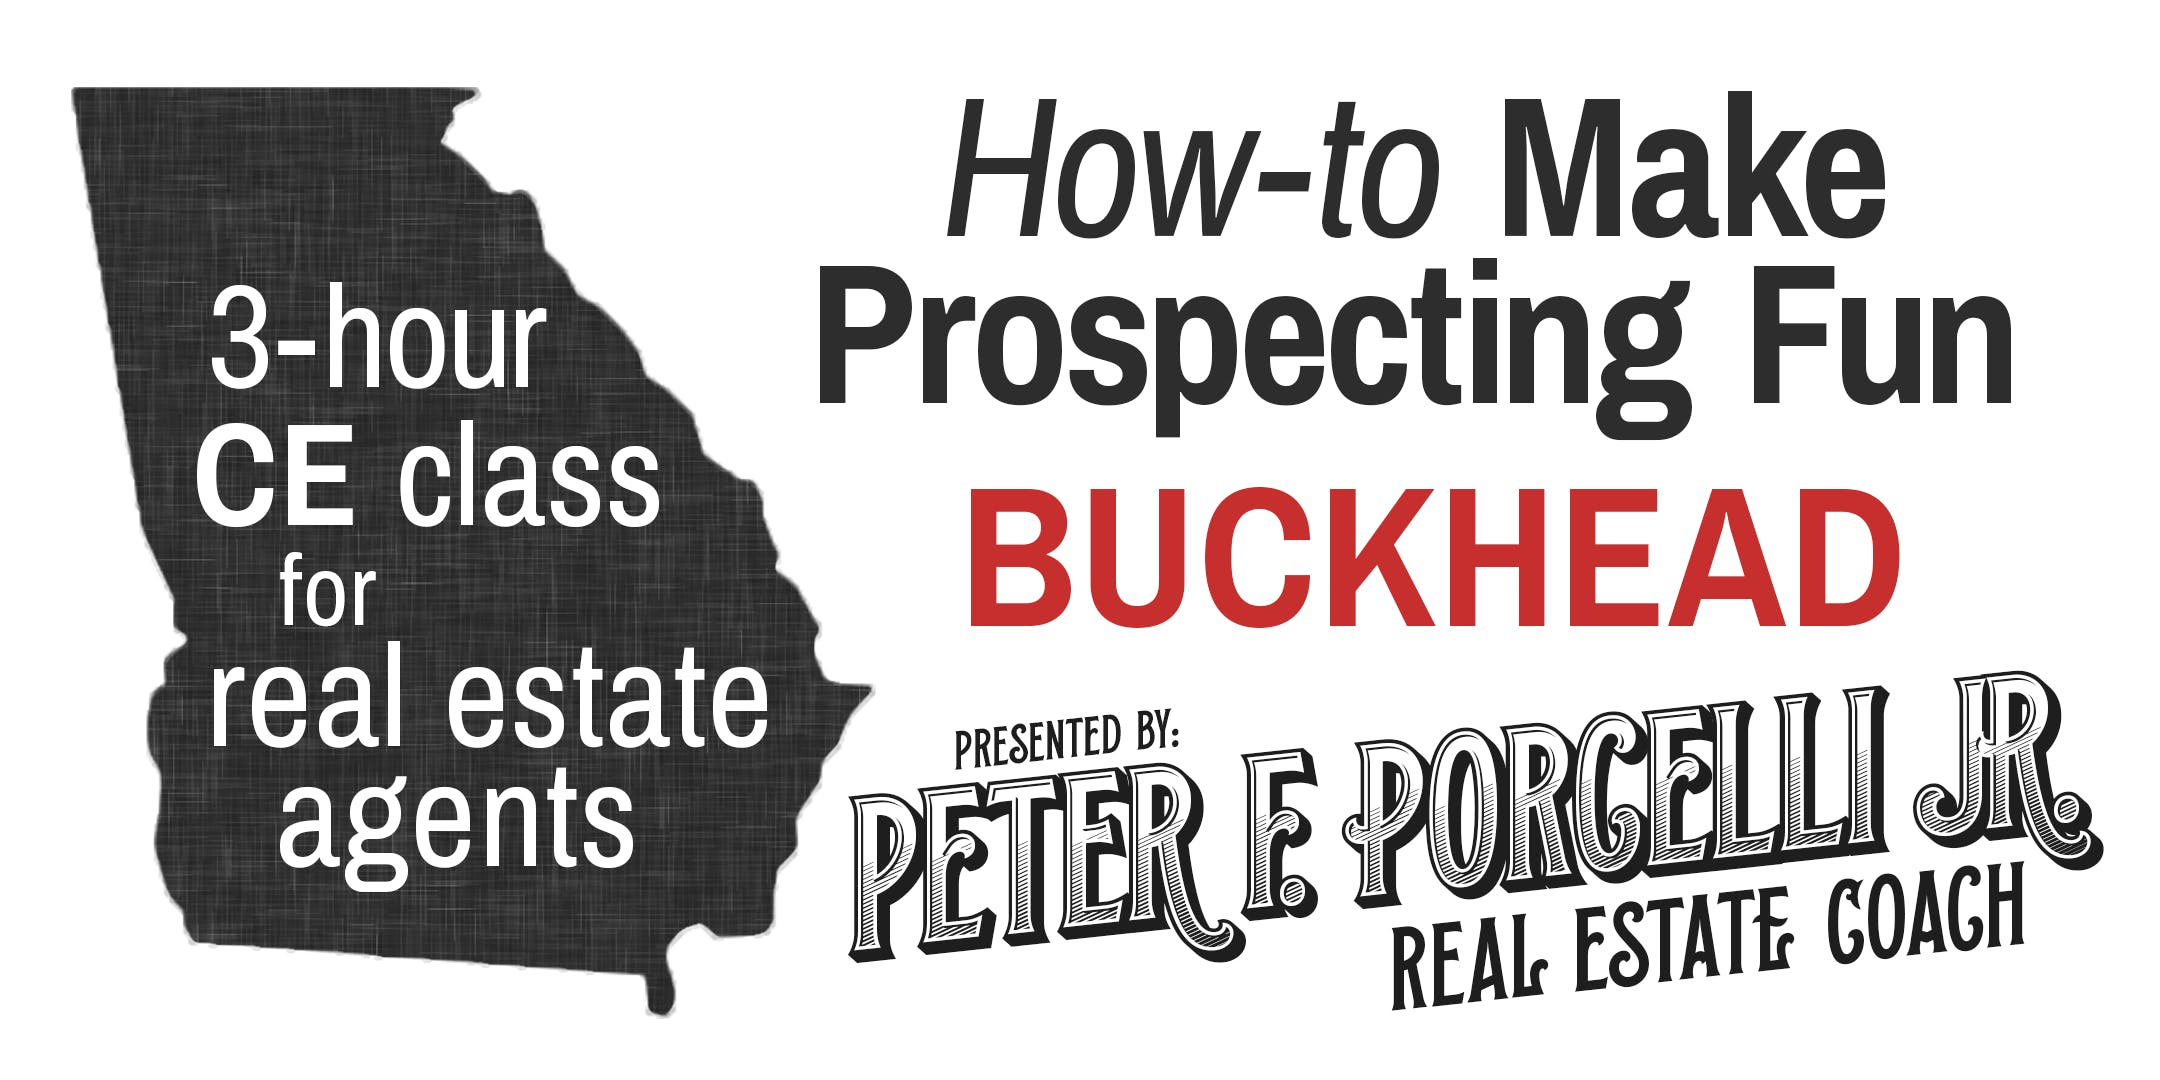 How-to Make Prospecting Fun; 3 hrs. CE class